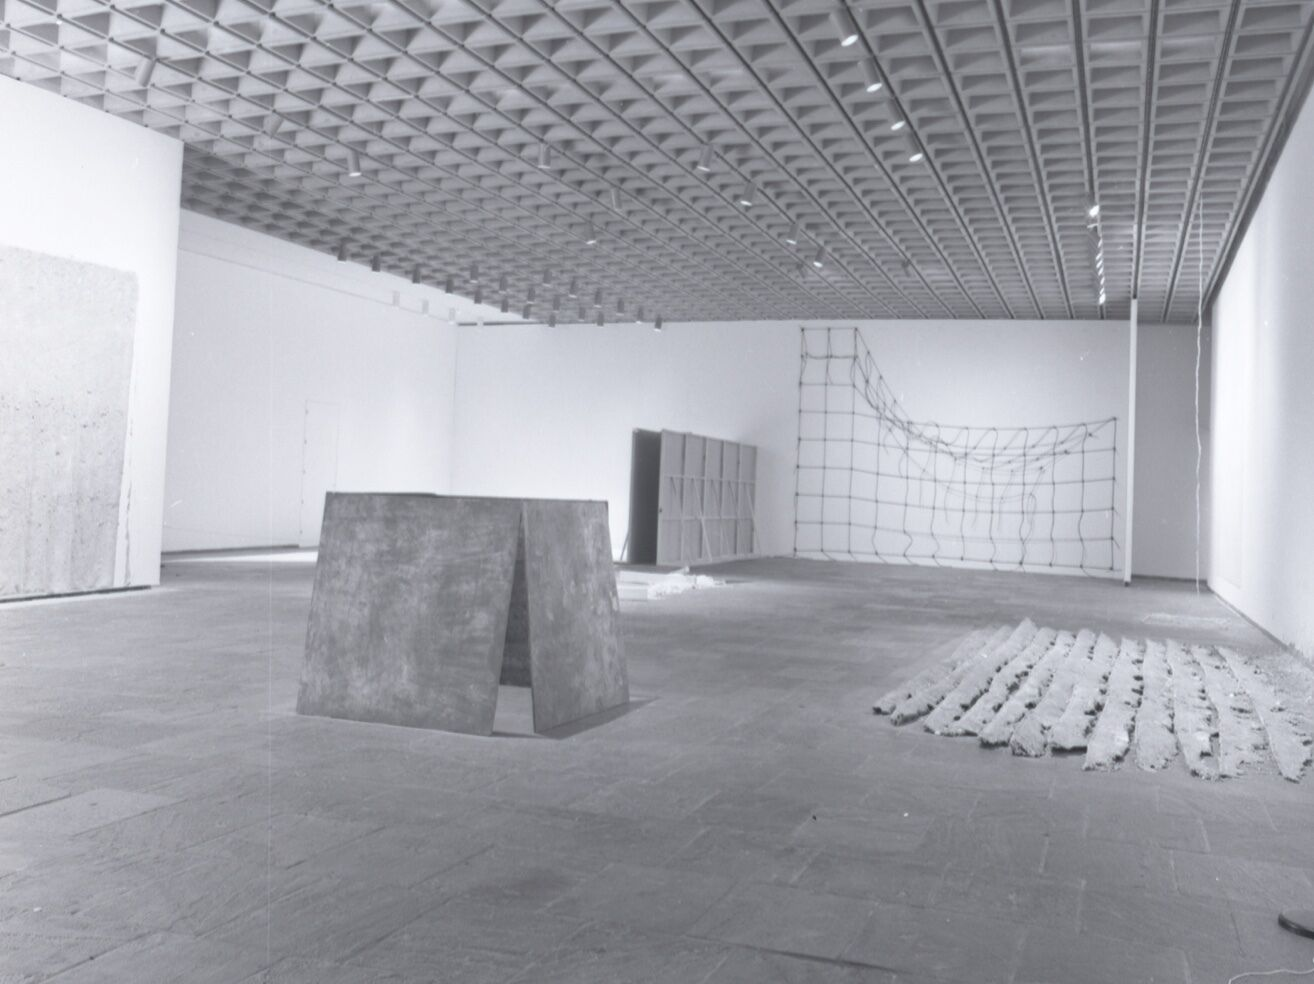 A grayscale image of a large exhibition room with a few pieces situated on the floor.